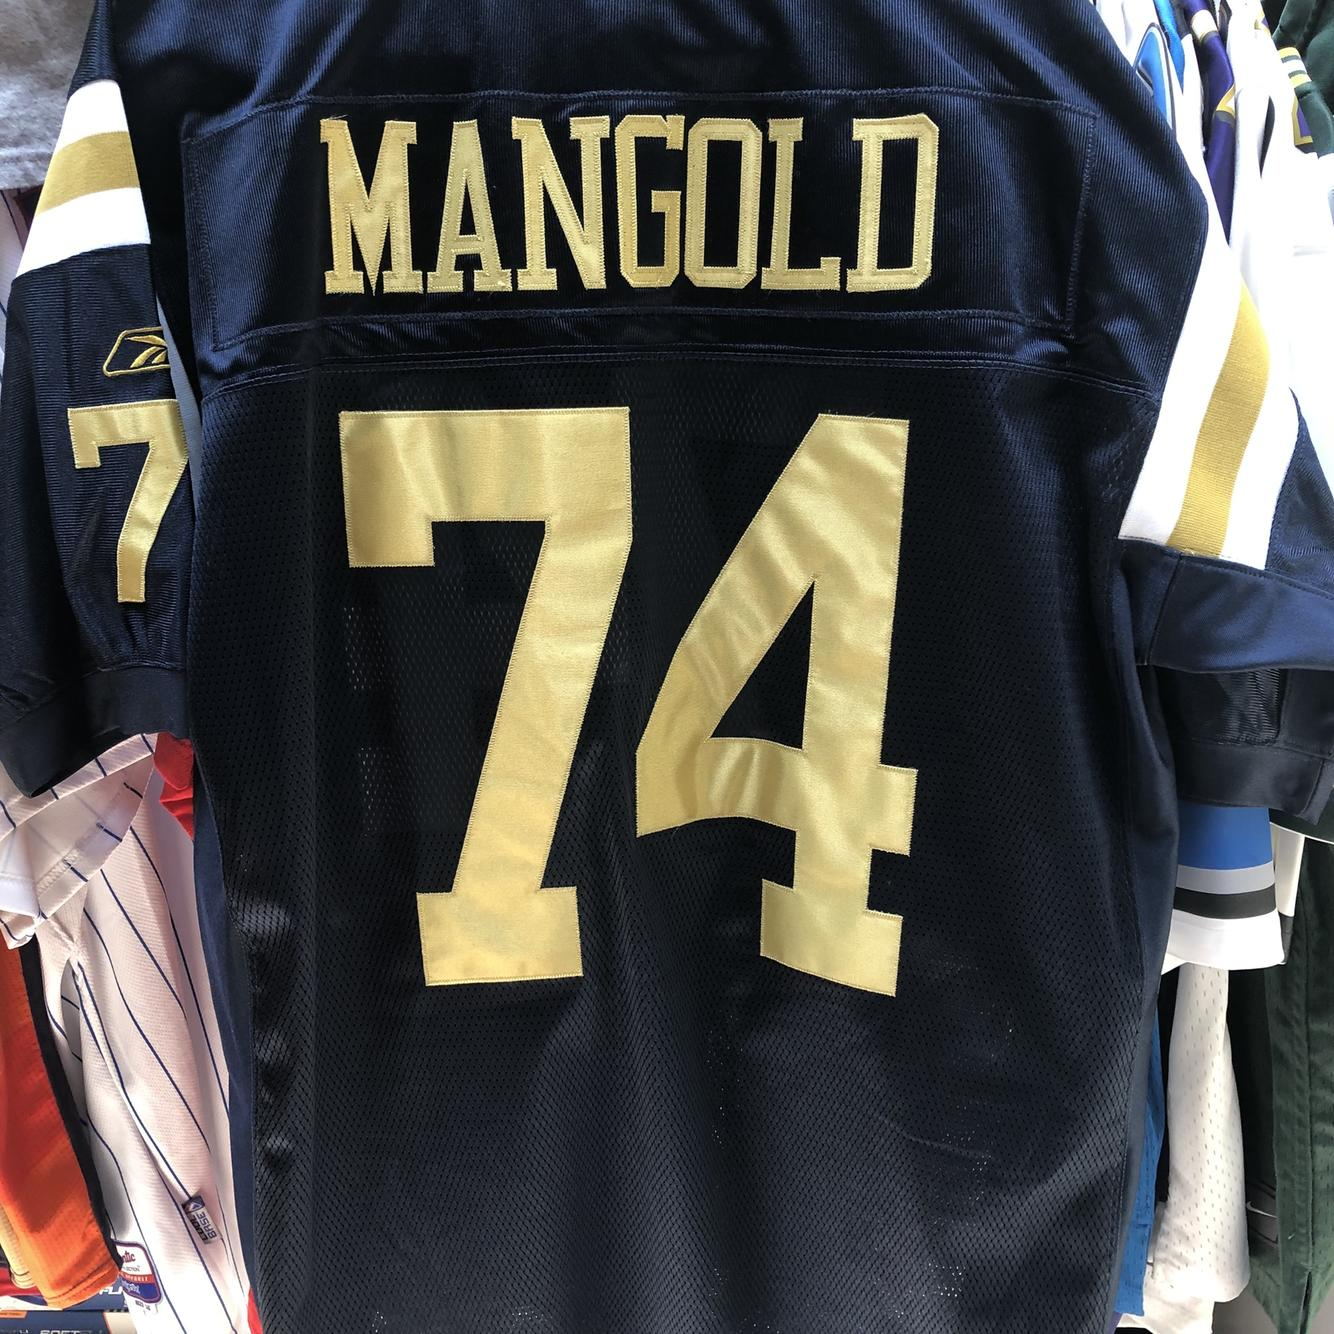 Parity > mangold jersey authentic, Up to 62% OFF